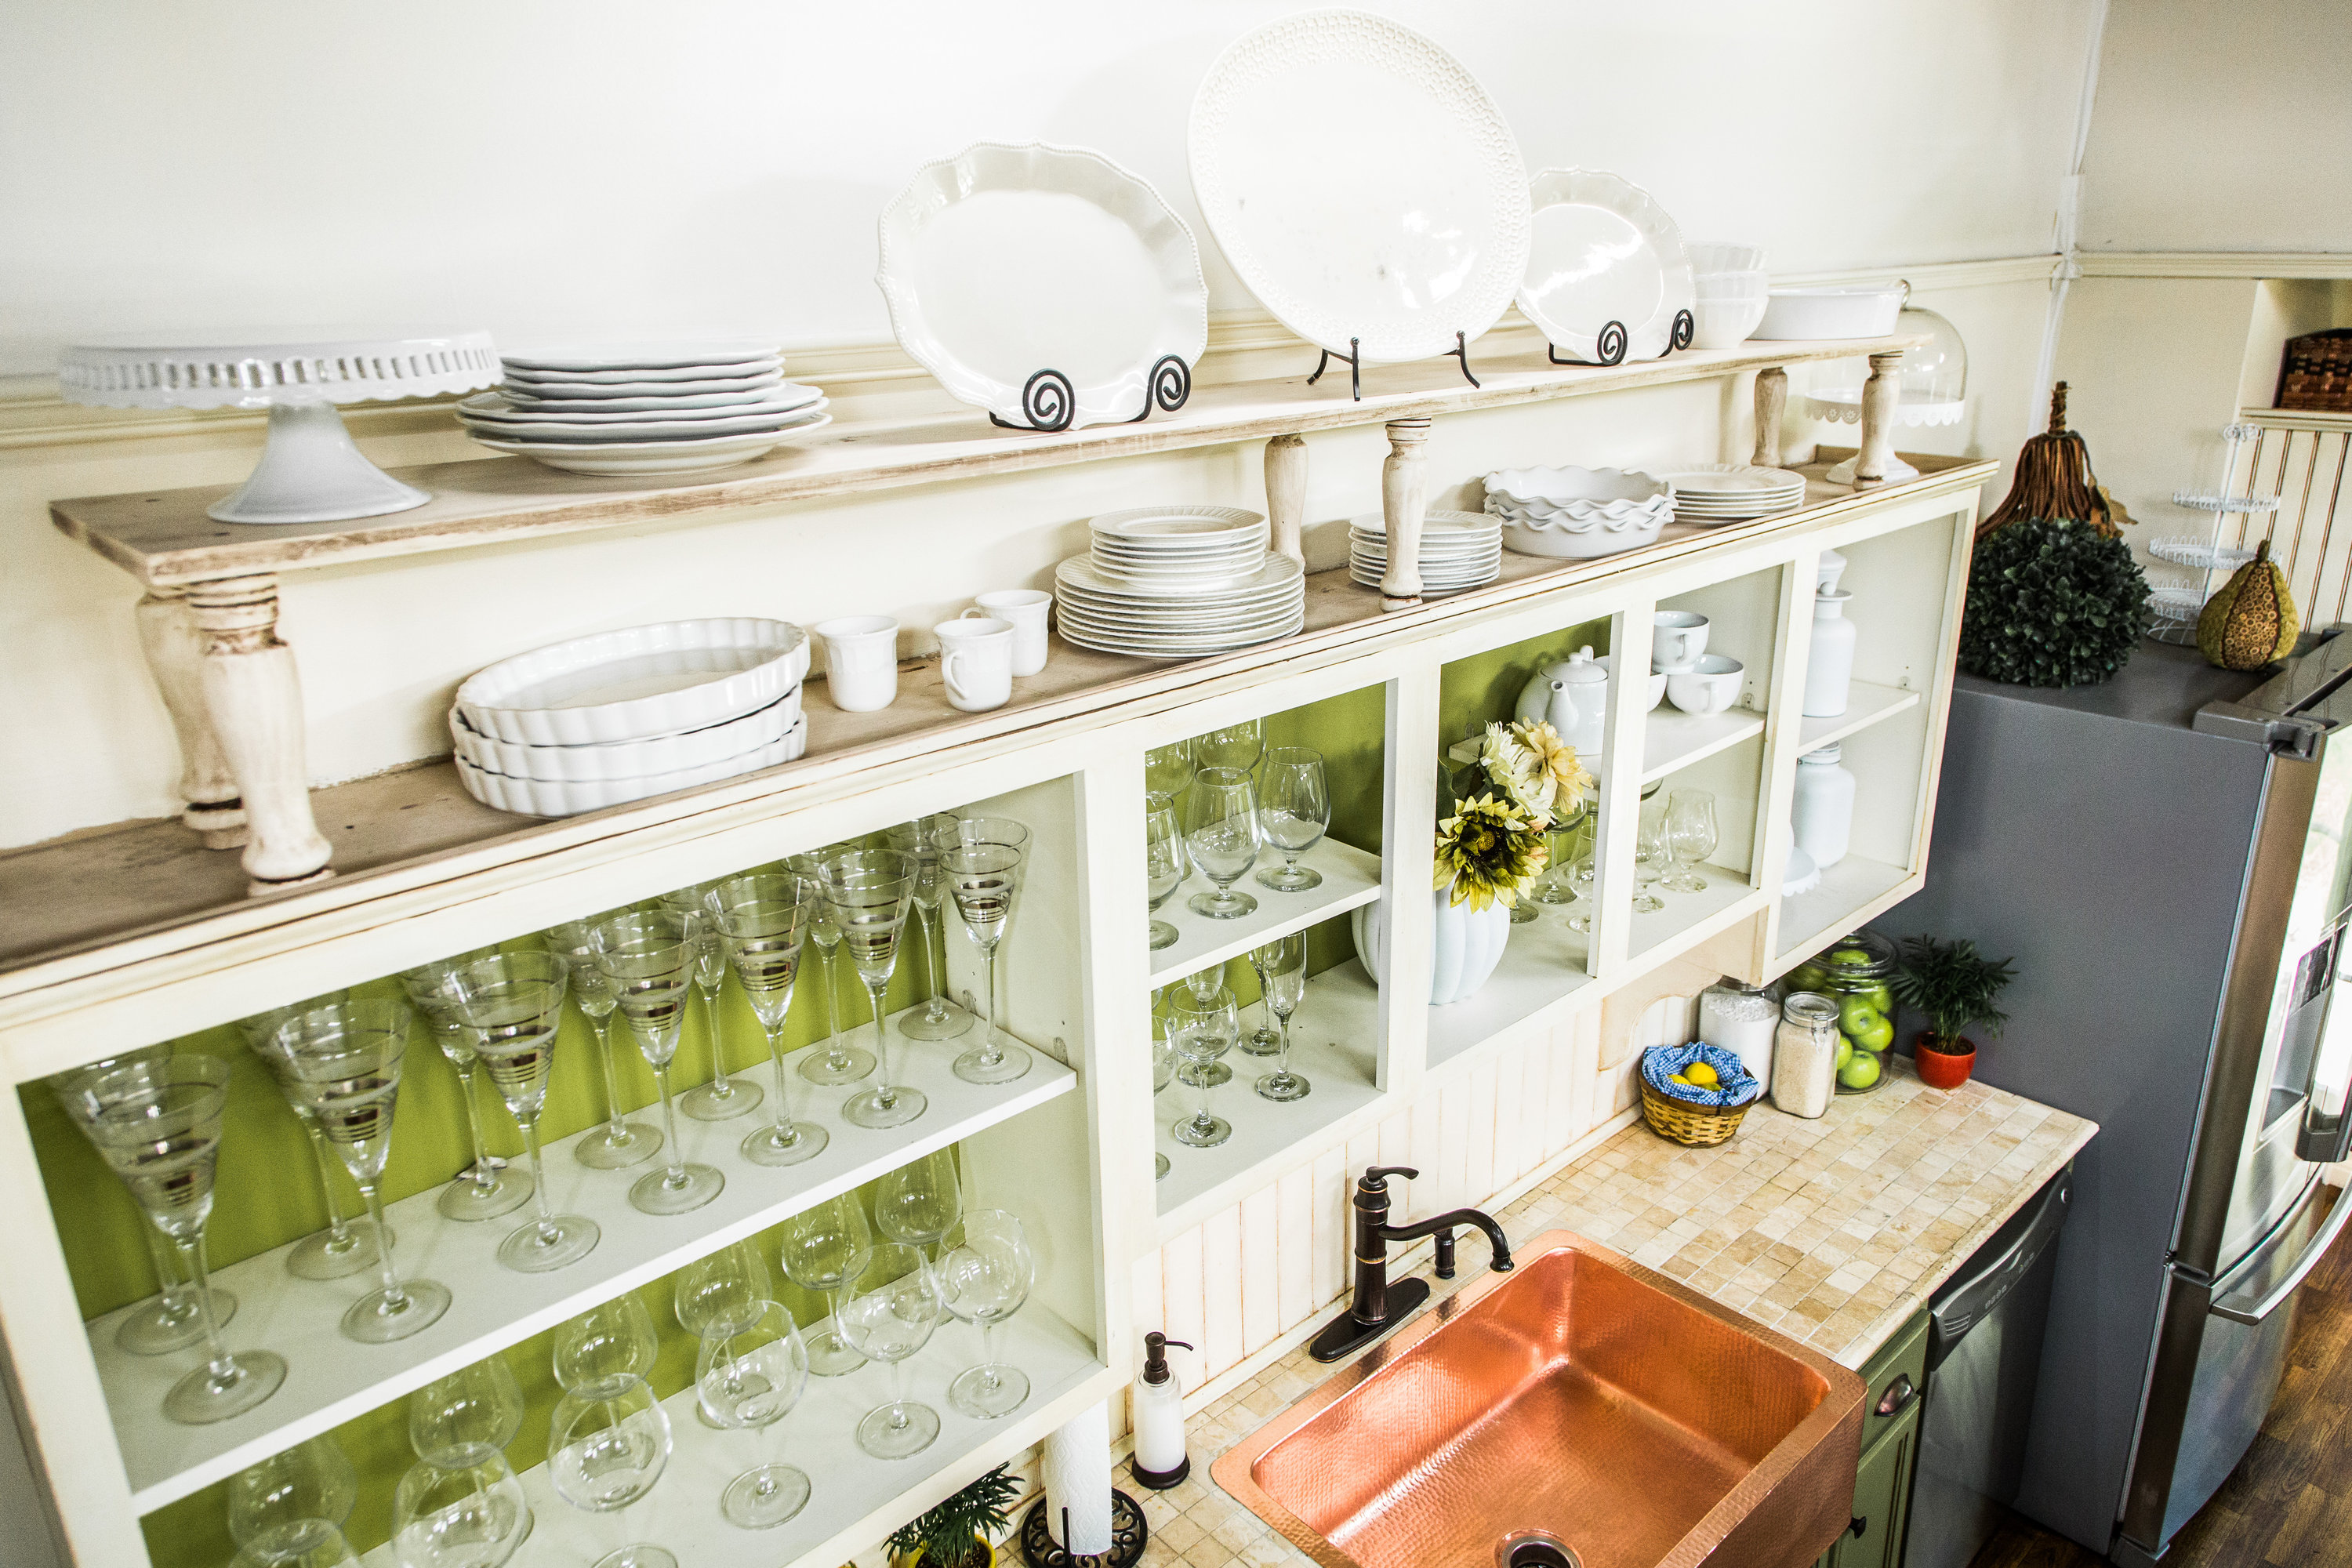 How To Home & Family DIY Kitchen Shelves for Extra Storage